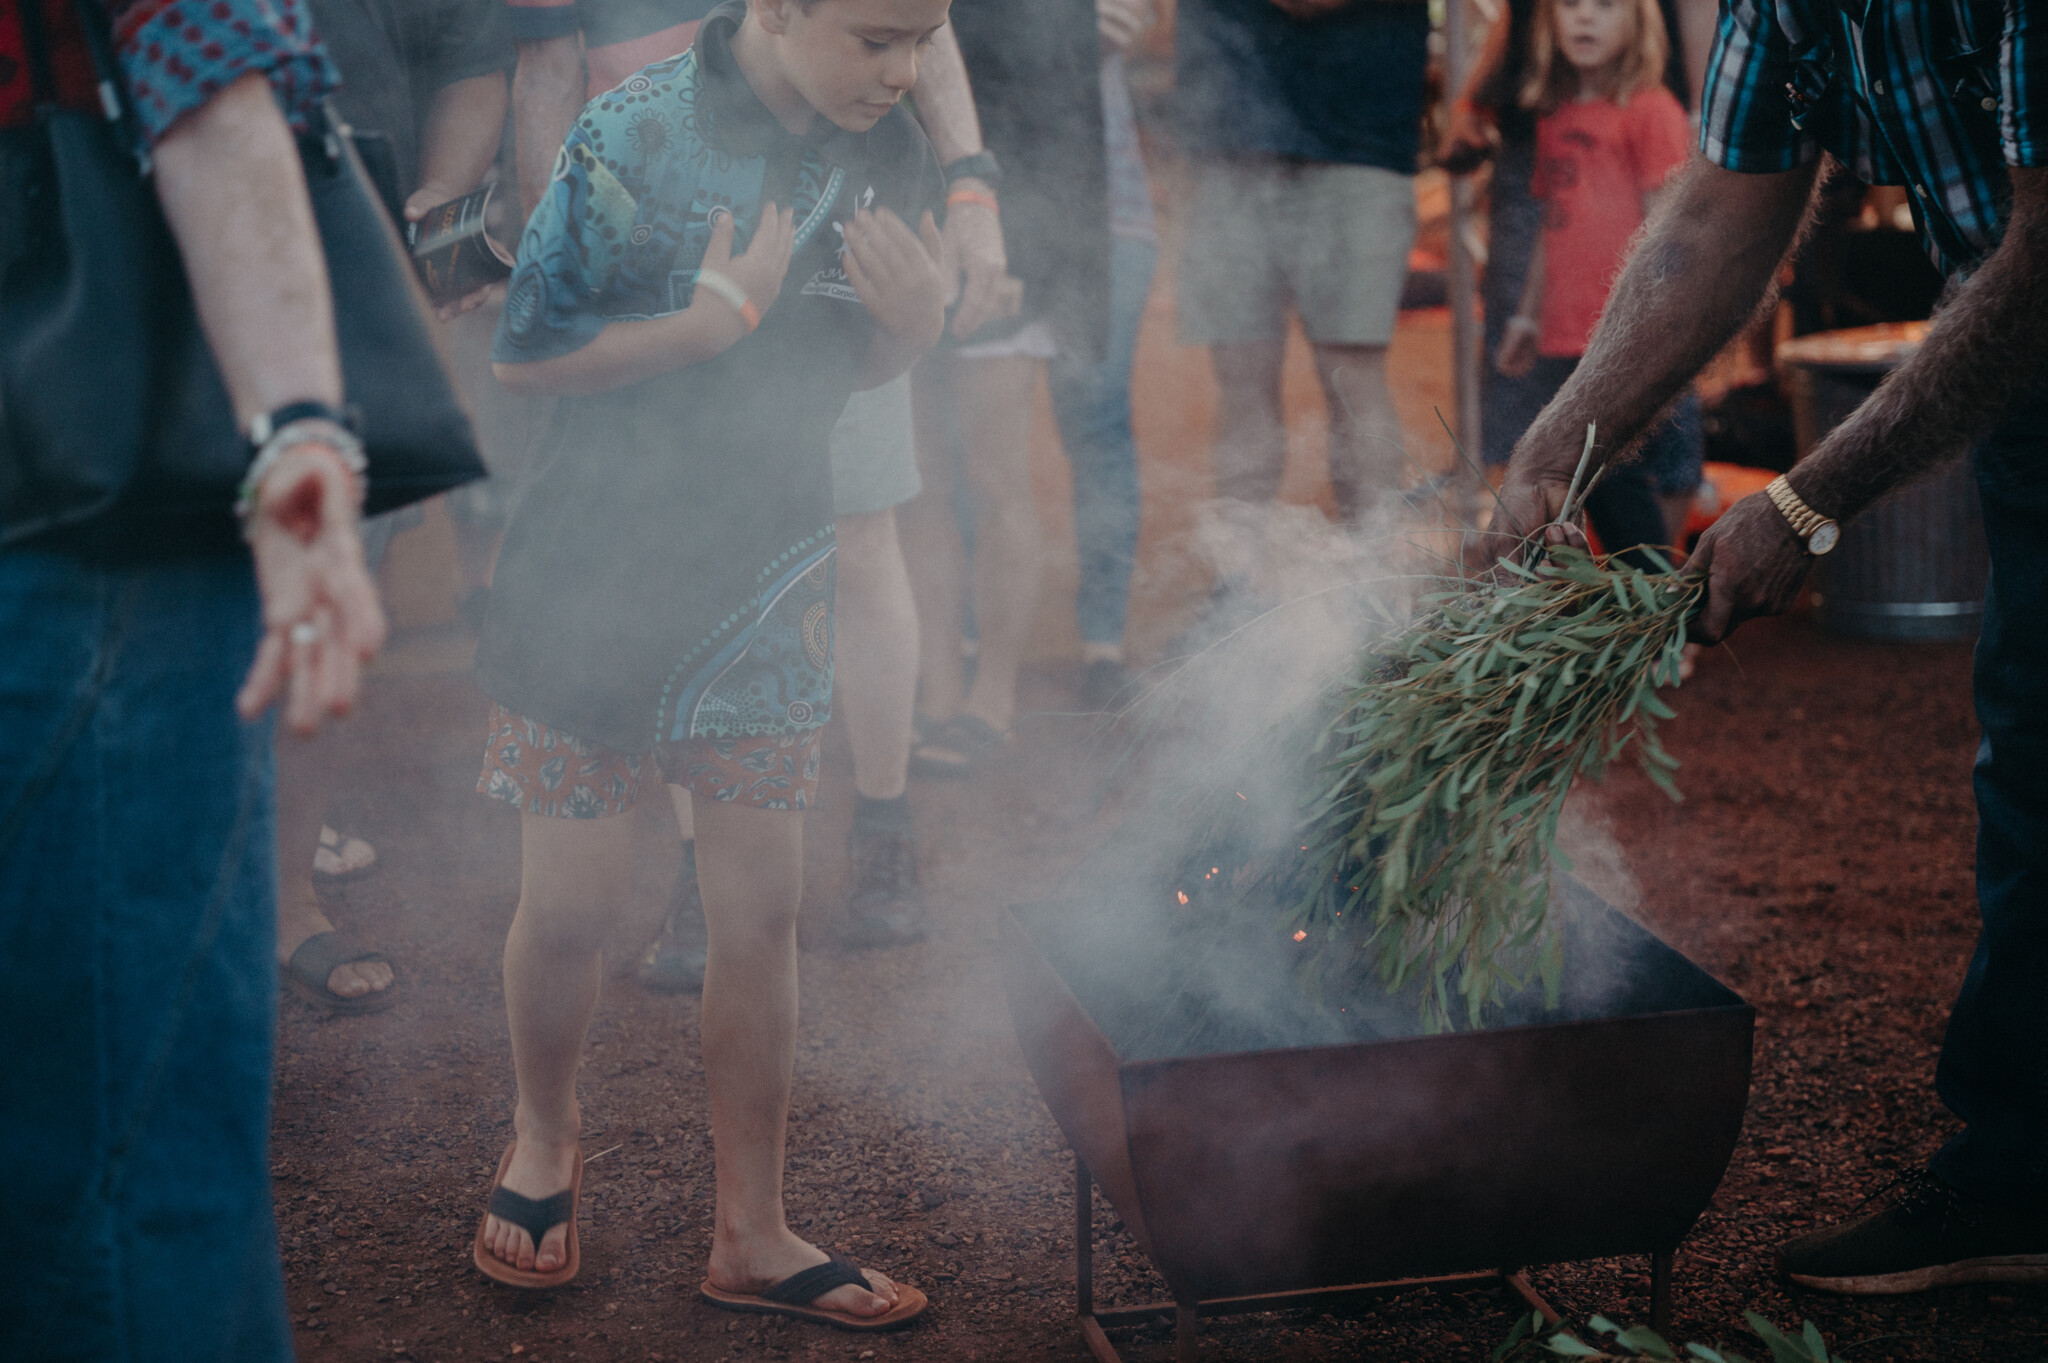 A young boy approaches the smoking ceremony, the area is filled with smoke from smouldering native plants